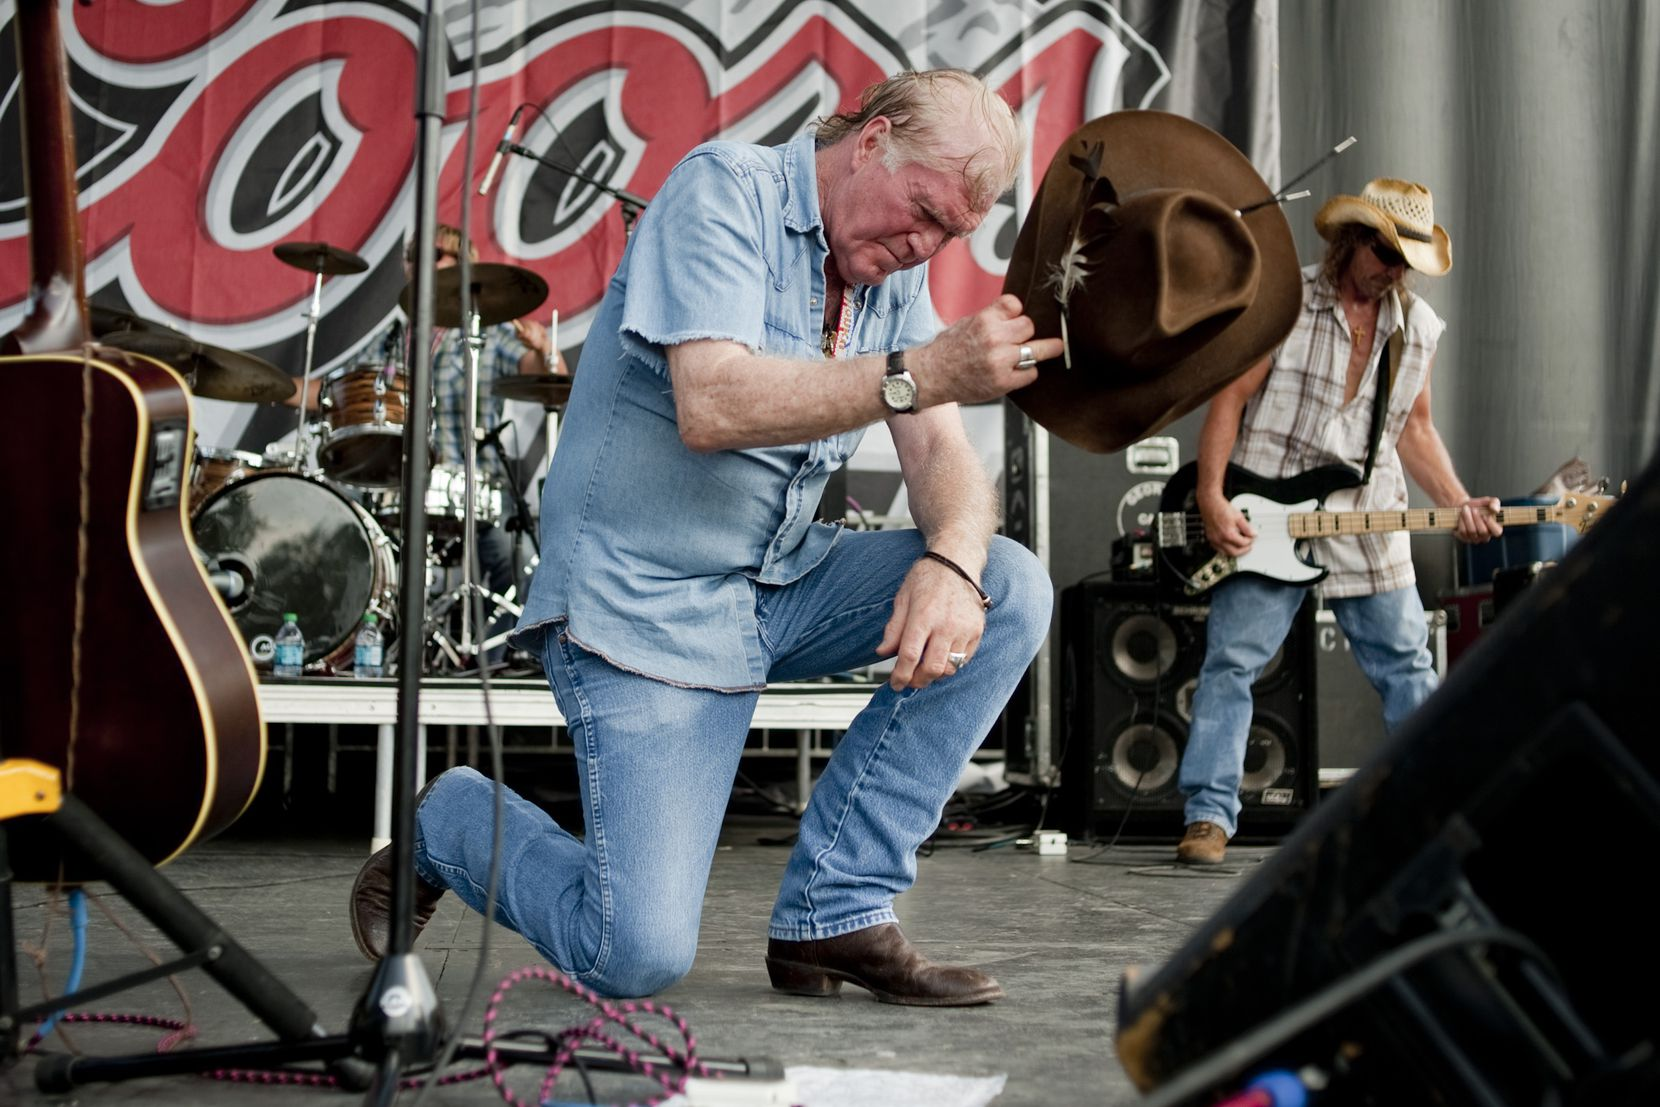 Billy Joe Shaver tips his cowboy hat during his set at Willie Nelson's Fourth of July Picnic at Billy Bob's Texas in Fort Worth in 2012.